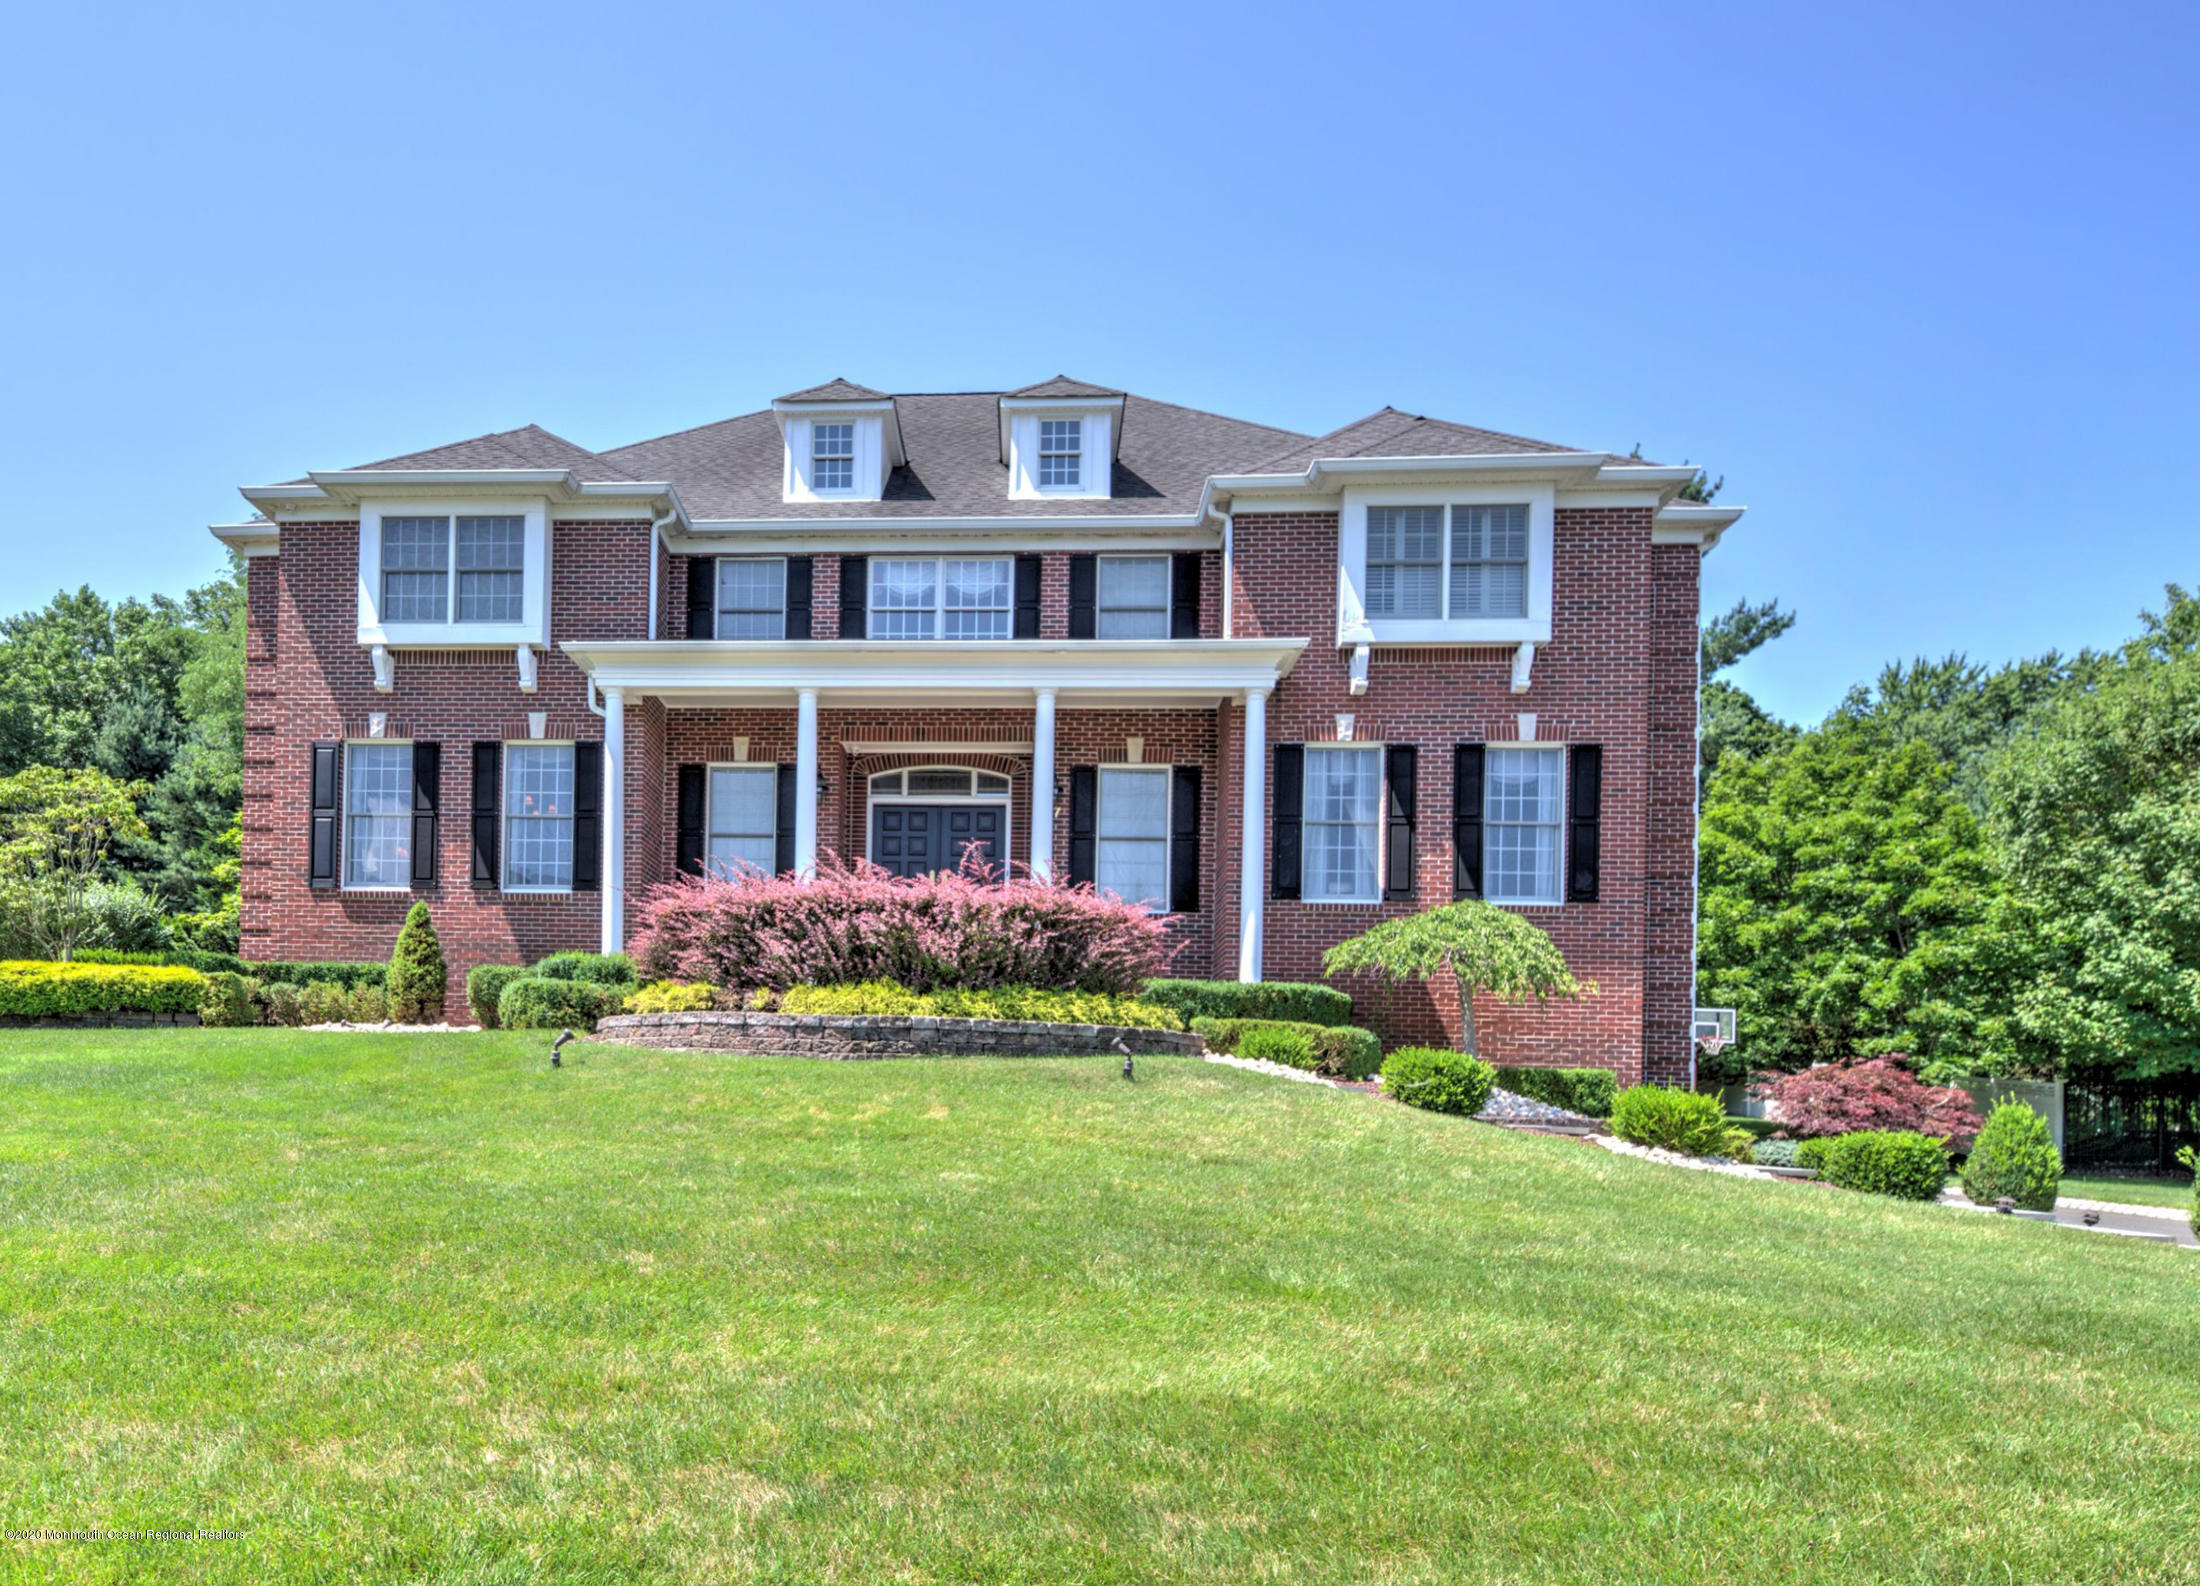 7  Landmark Lane,  Marlboro, NJ